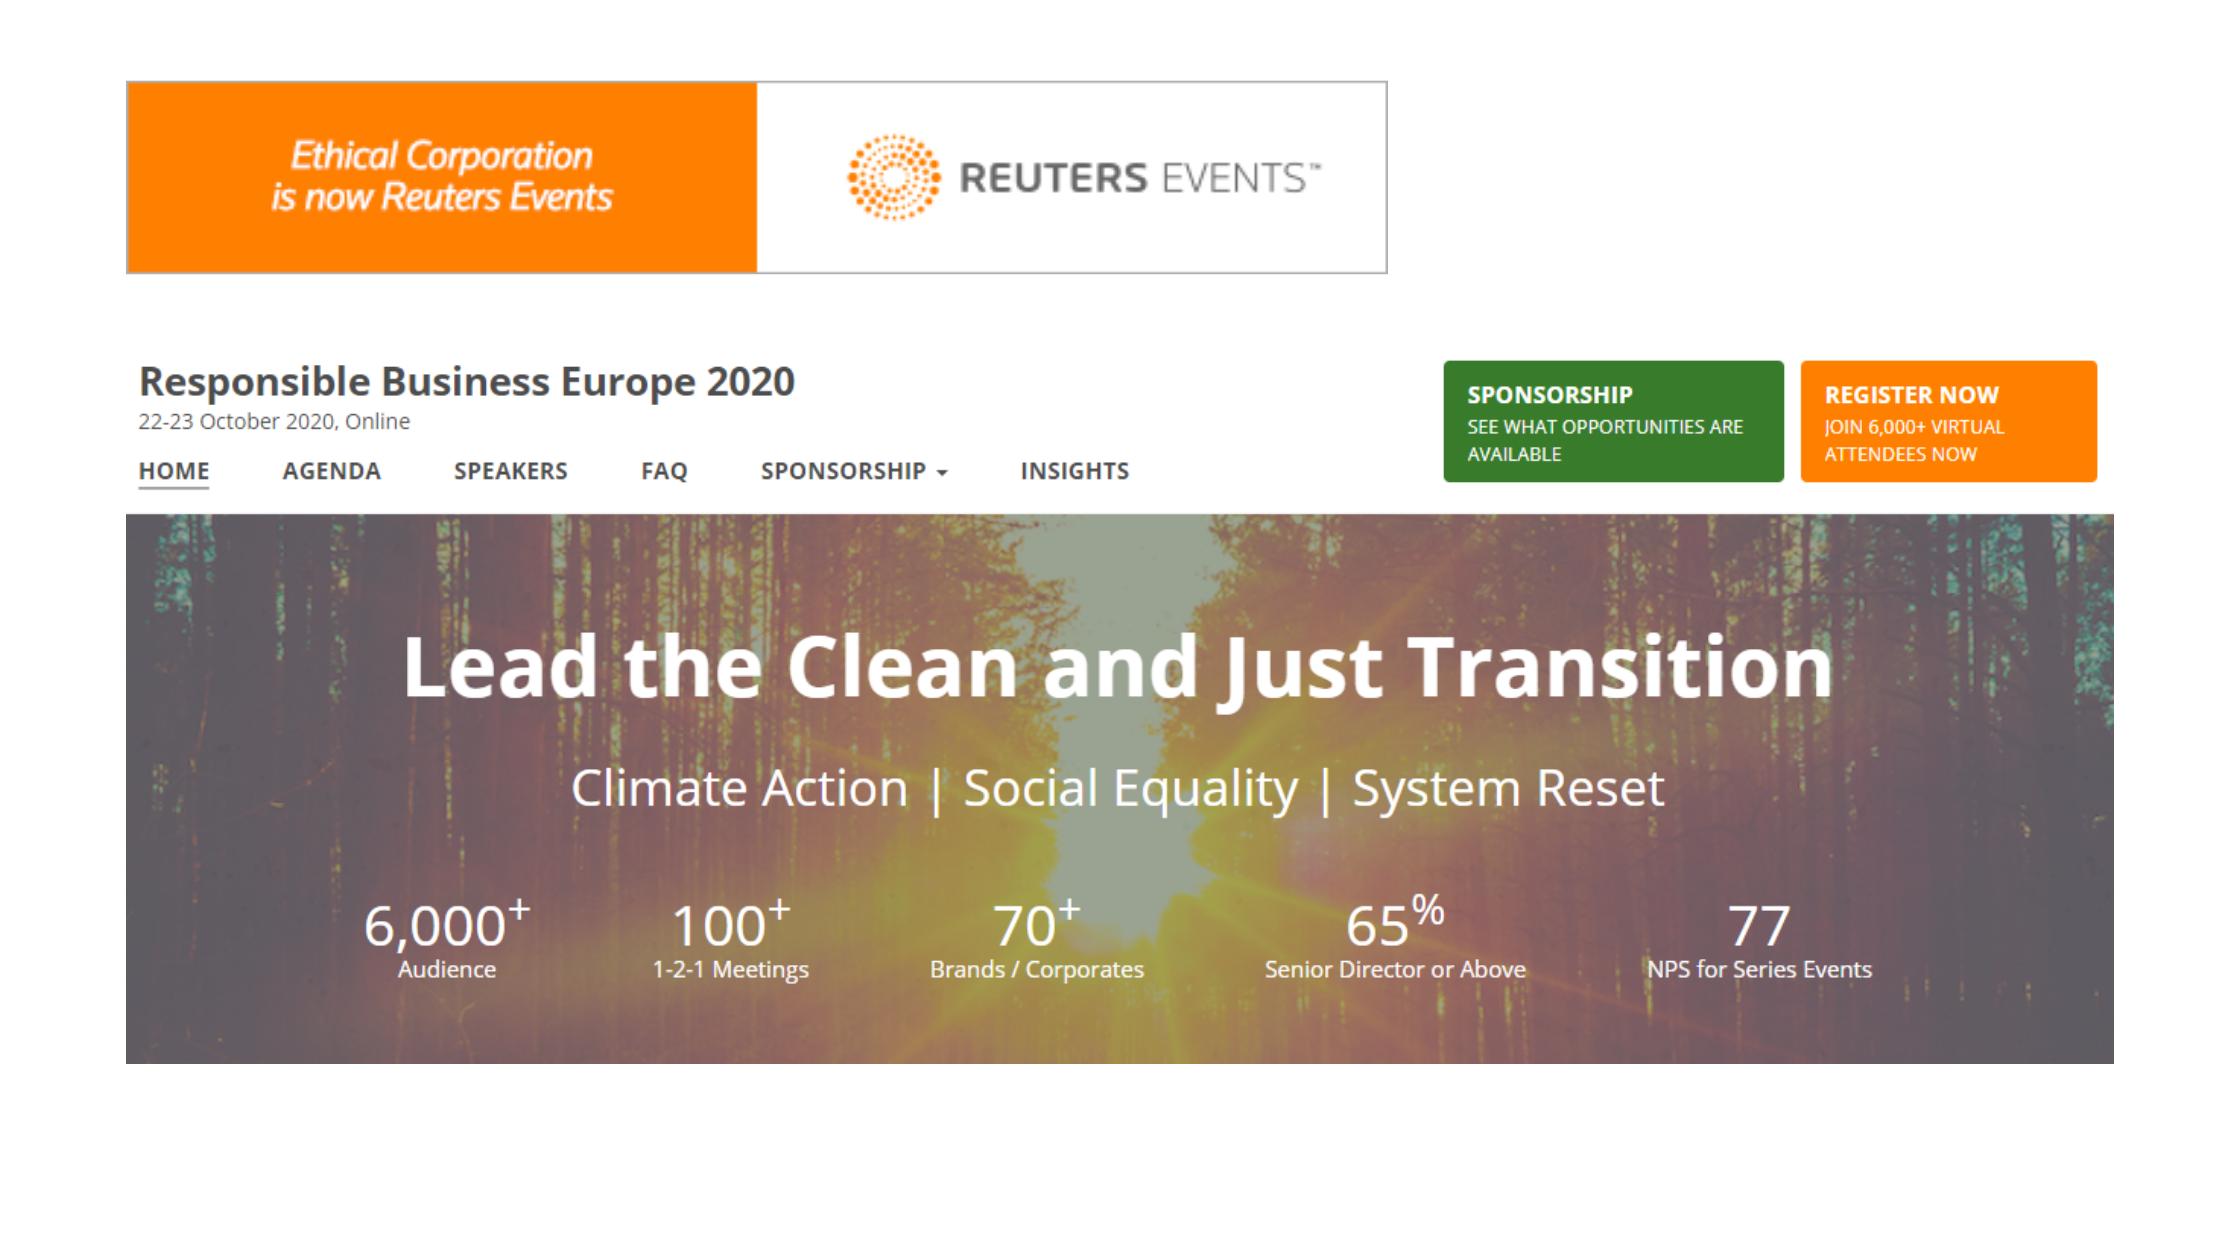 Reuters Events launches The Responsible Business Europe 2020